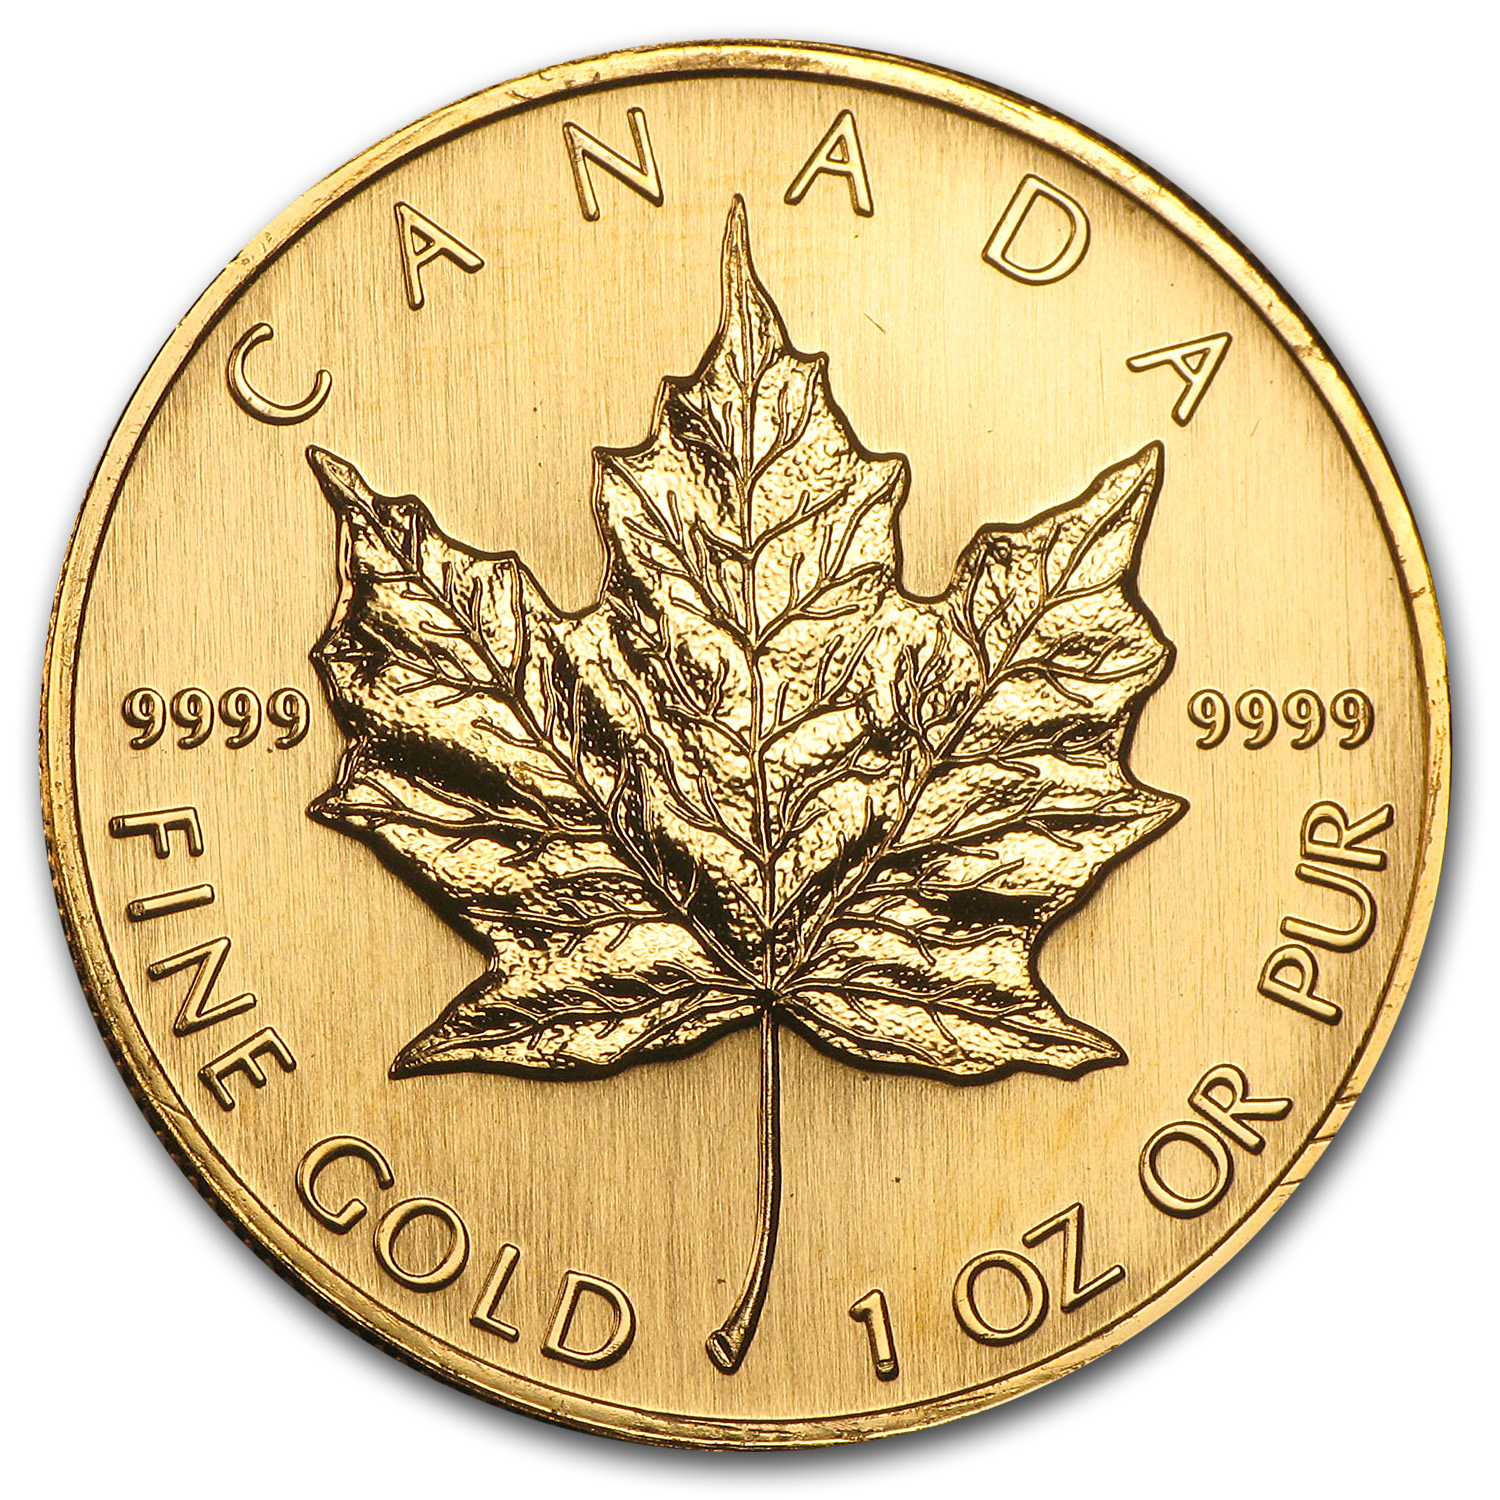 1996 Canada 1 oz Gold Maple Leaf BU